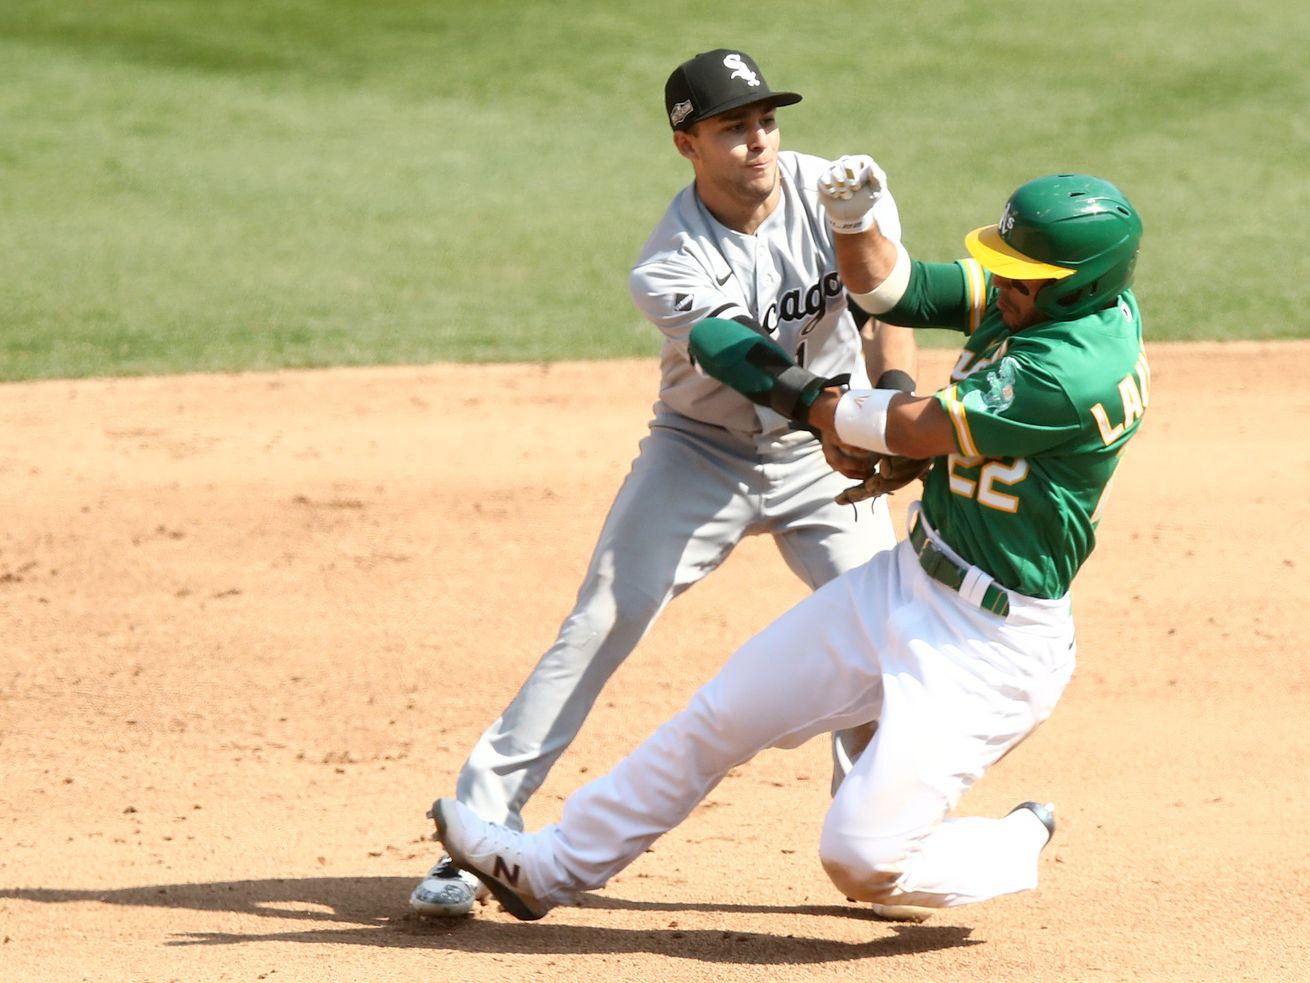 Rookie Nick Madrigal's errors, baserunning costly in White Sox loss